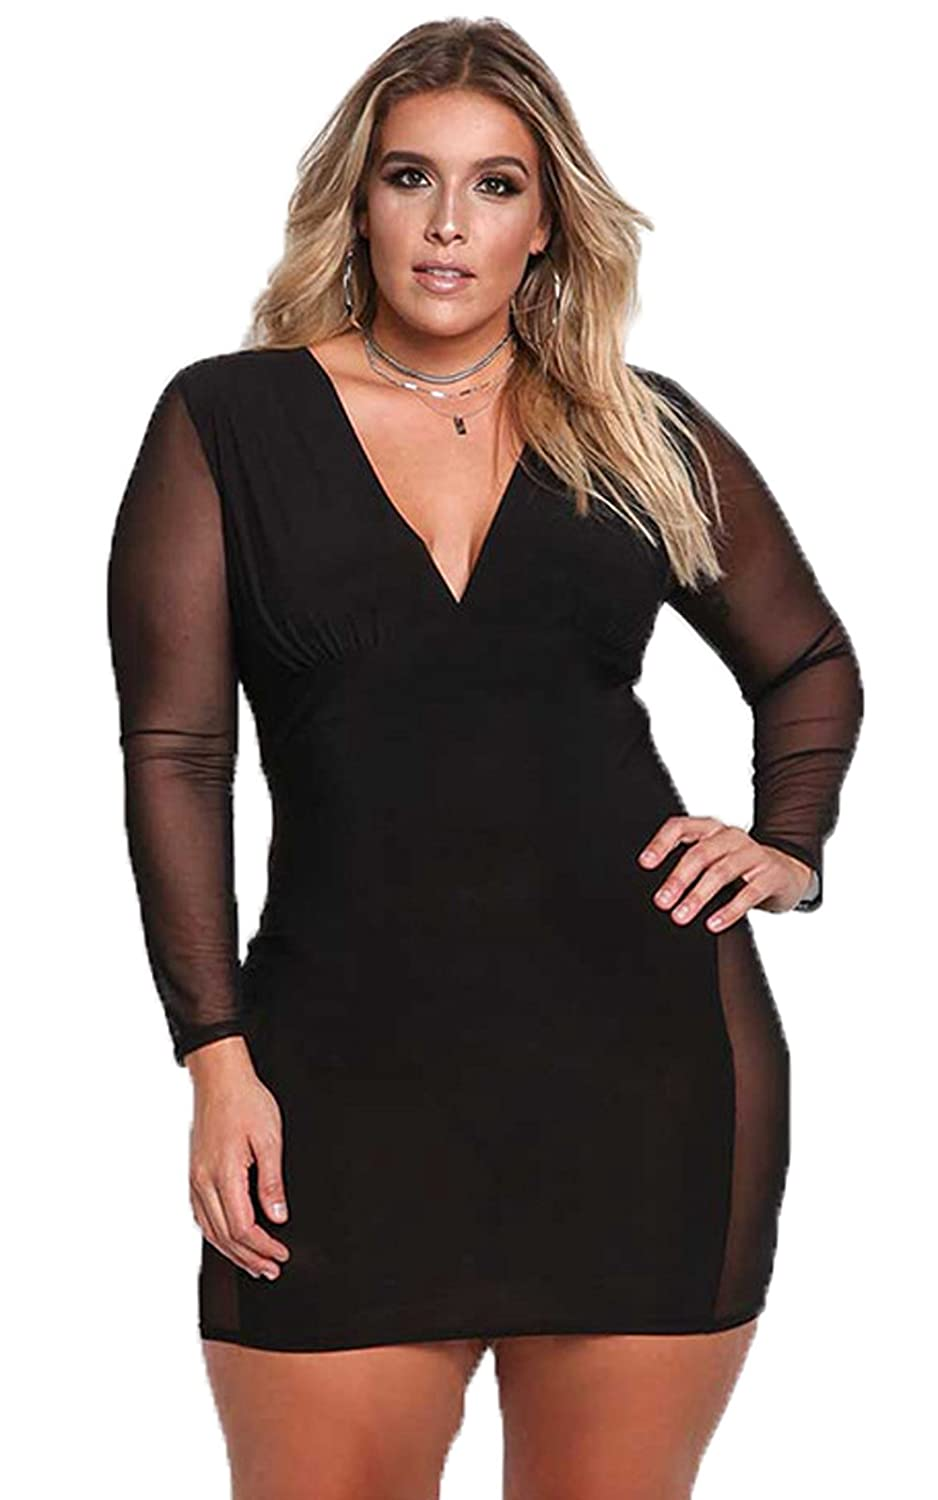 54c2cb3efee7 Sexy Plus Size Dress - V Neck Mesh Long Sleeves Autumn Women Bodycon Dress  at Amazon Women's Clothing store: